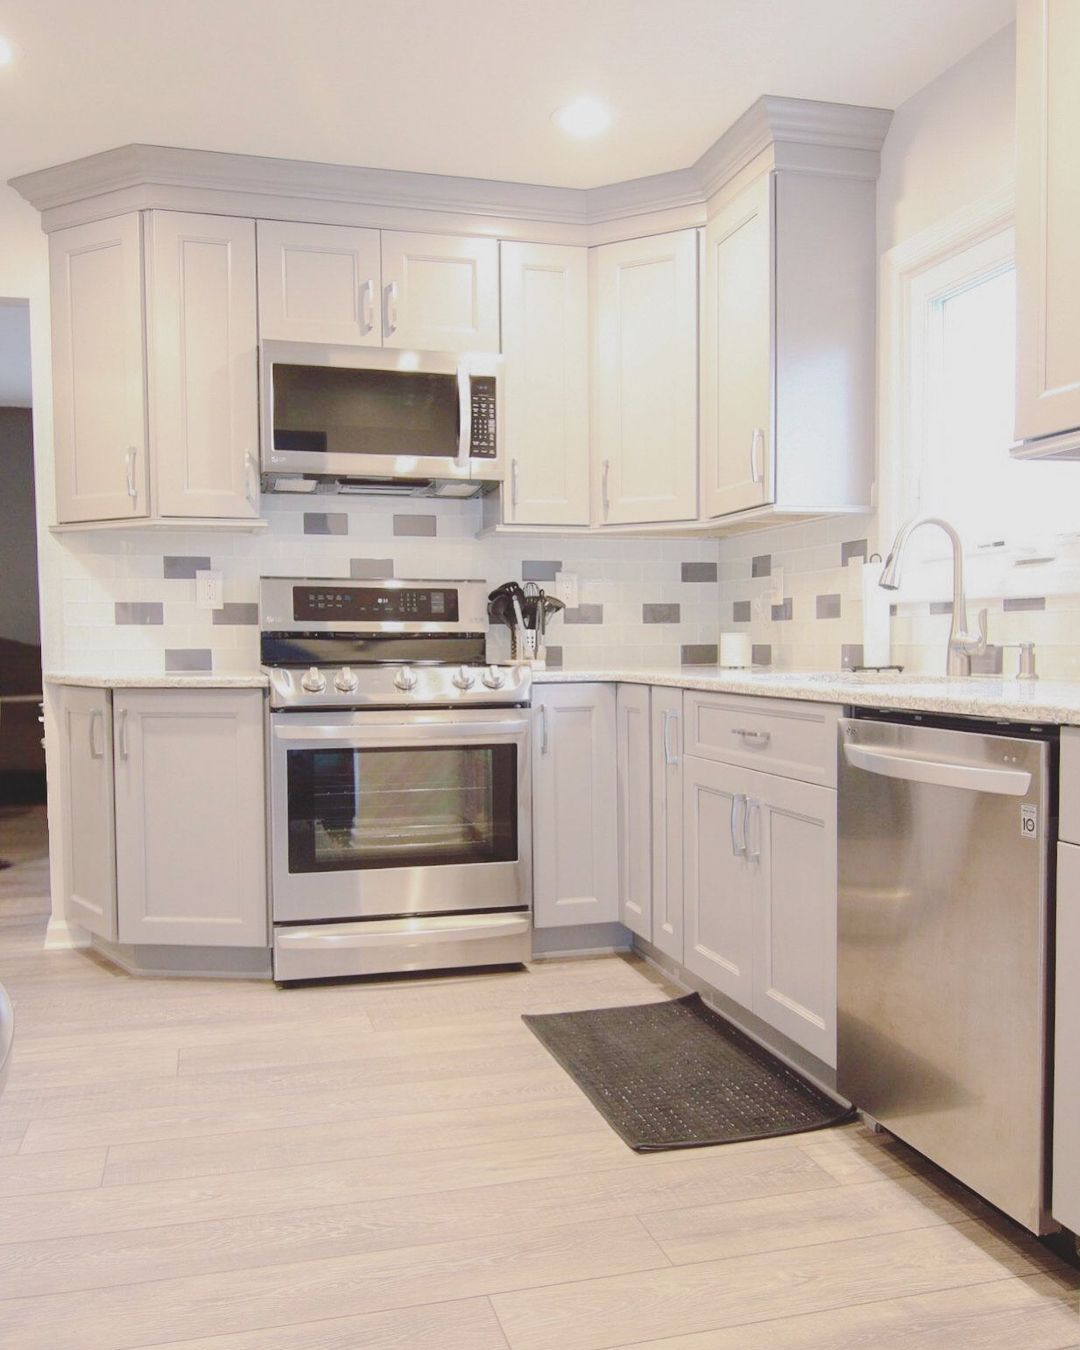 Kitchen Cabinet 24x24 Gray And White By Design? Oh Yes! We Love Our Sleek